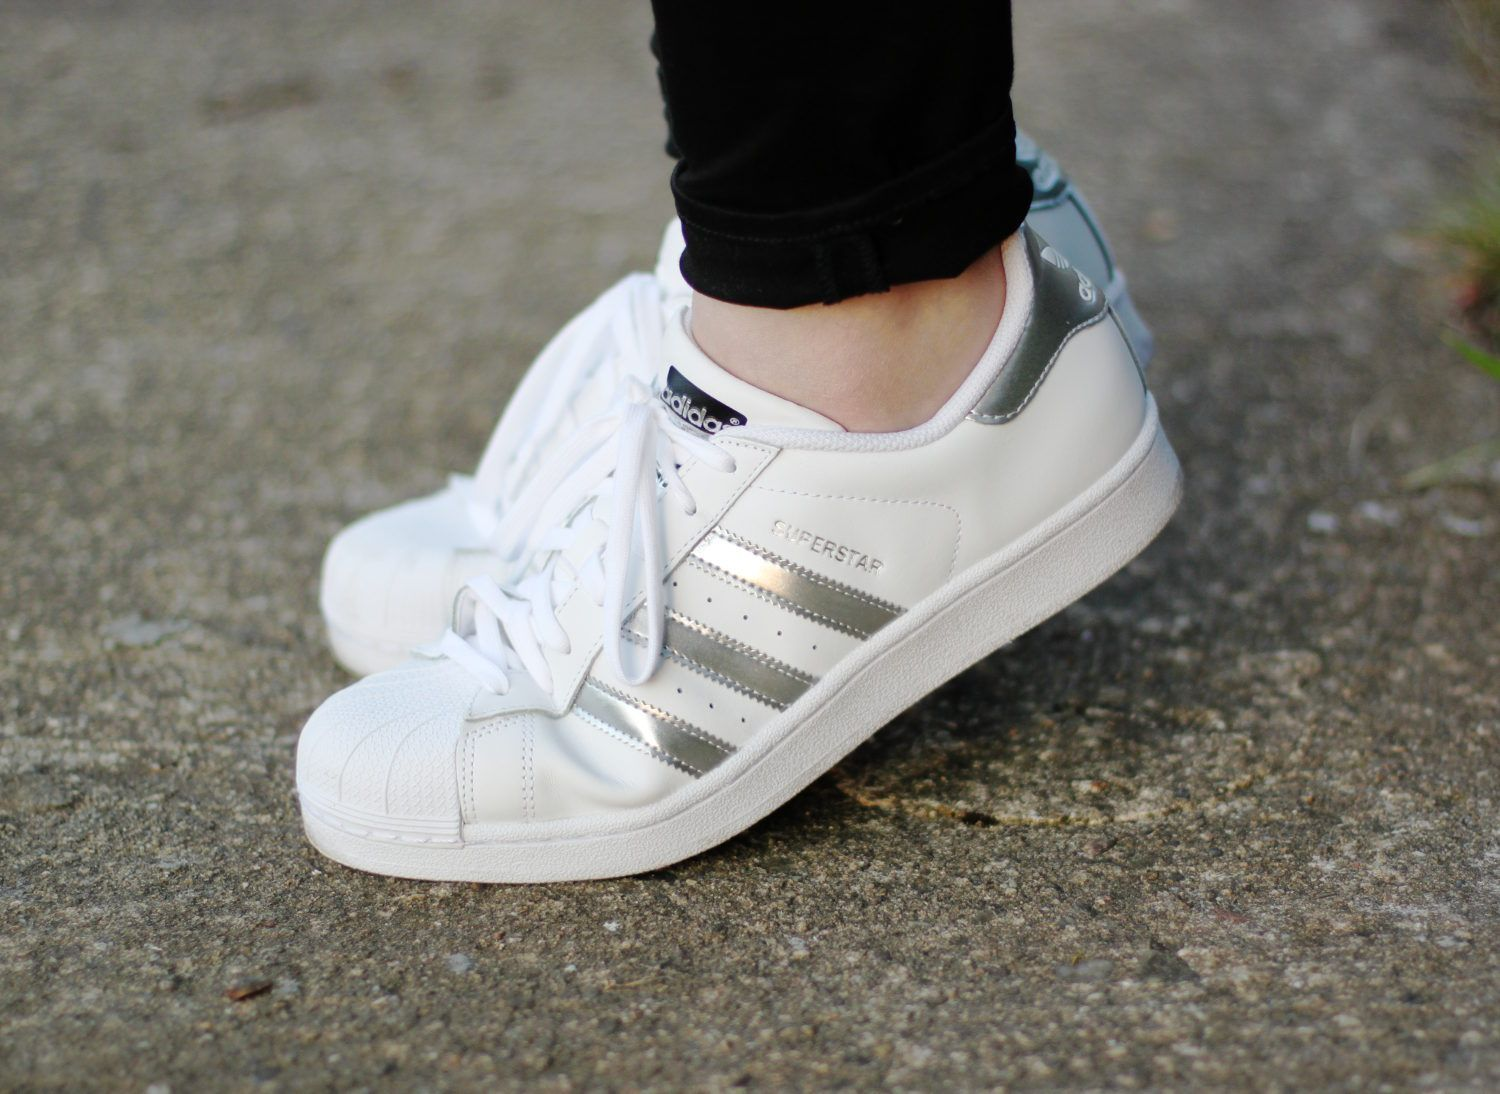 Pin auf Metallic Obsession Sneakers, Birkenstocks etc